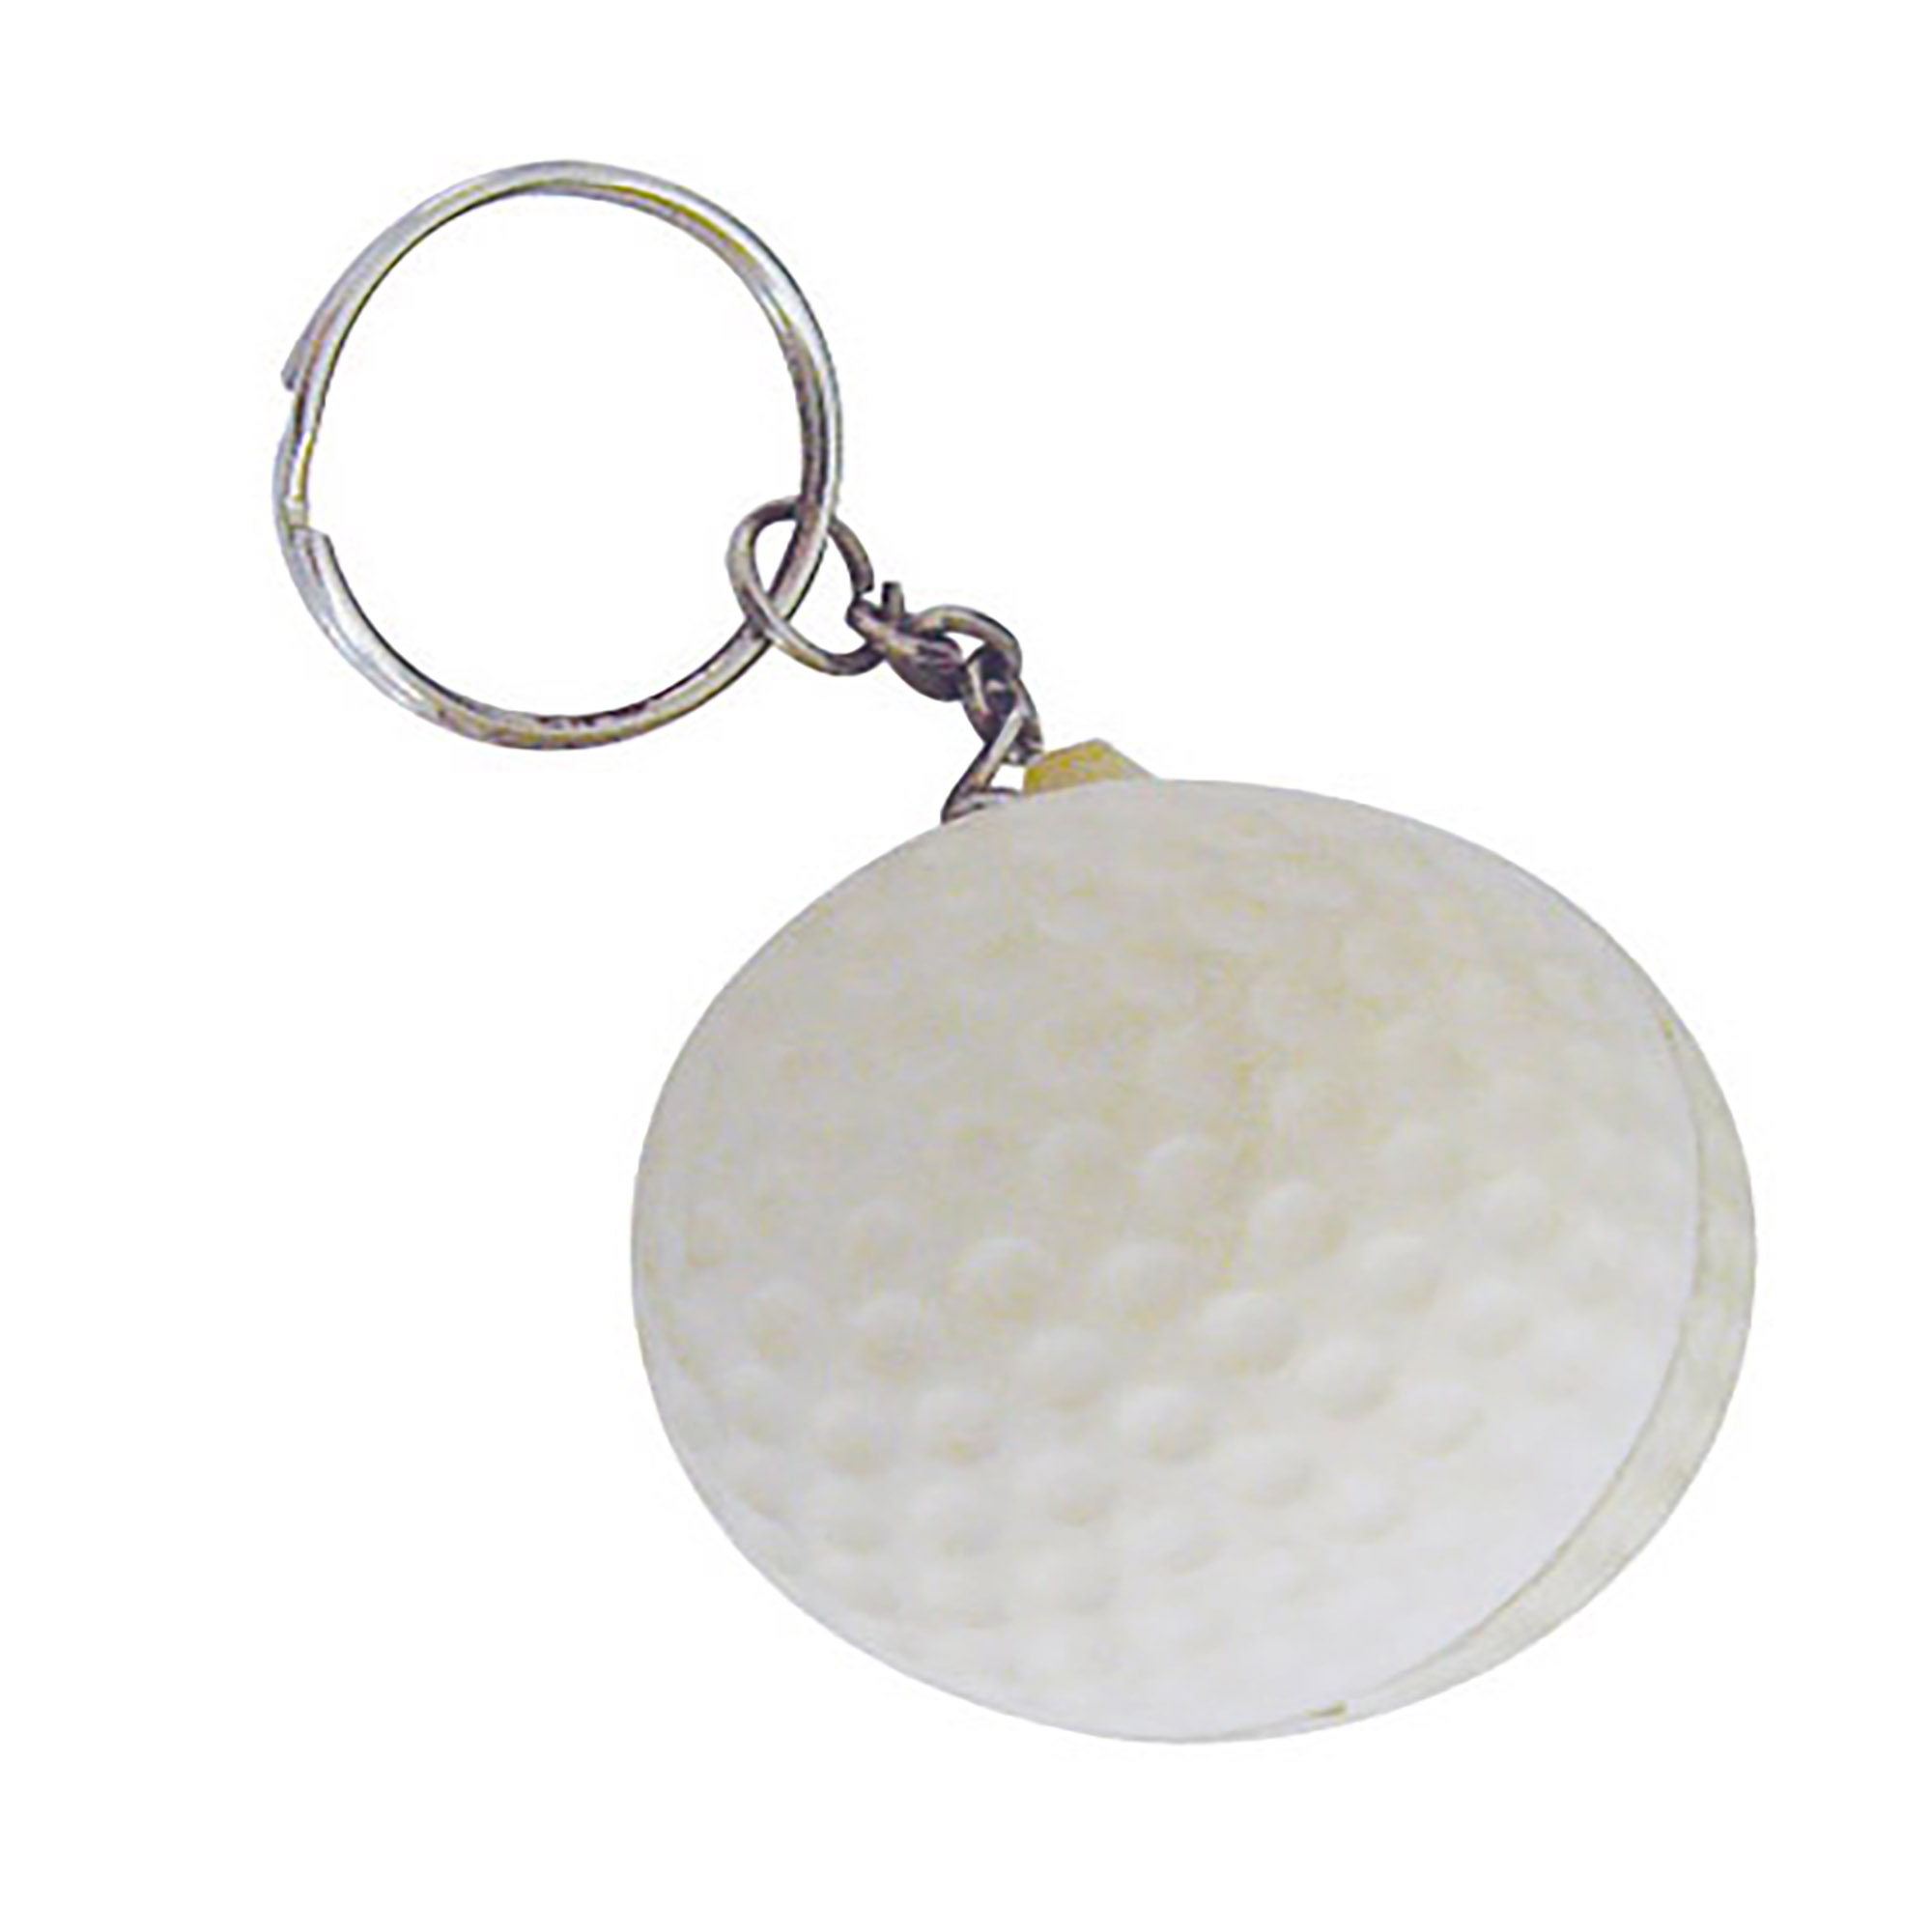 STRESS GOLFBALL KEYRING - 1 Colour Print, From $0.56